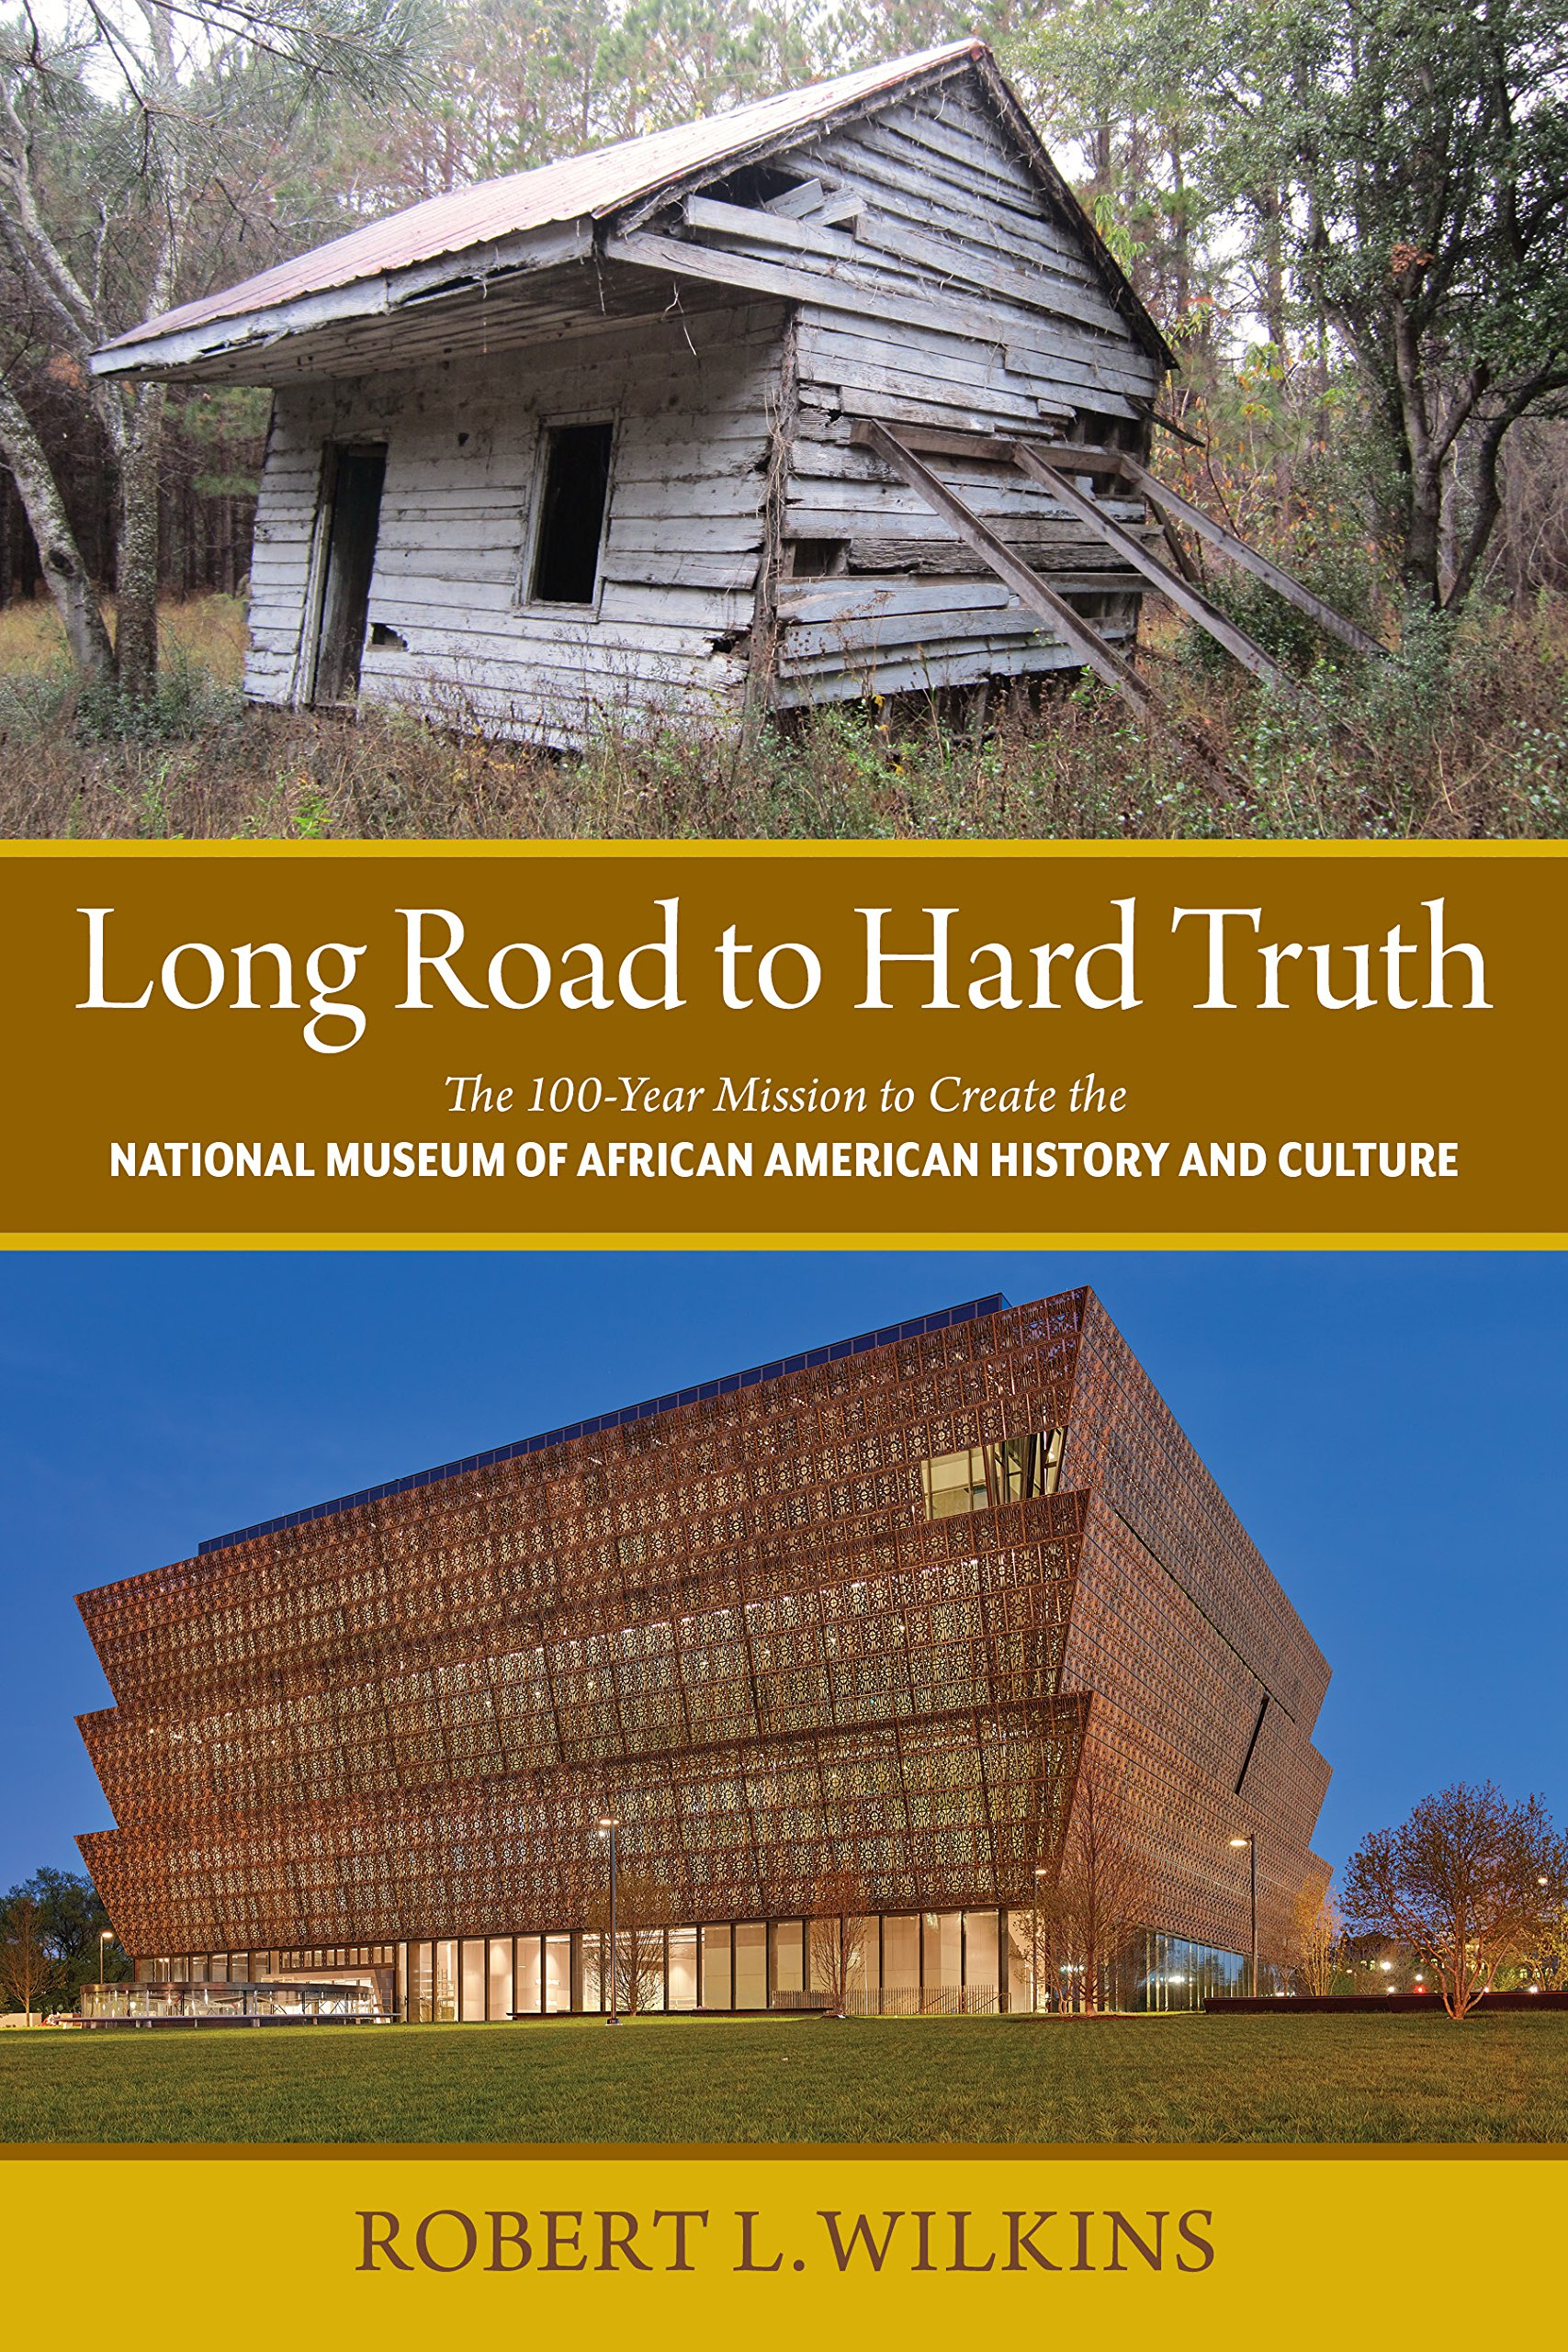 Download Long Road to Hard Truth: The 100 Year Mission to Create the National Museum of African American History and Culture PDF